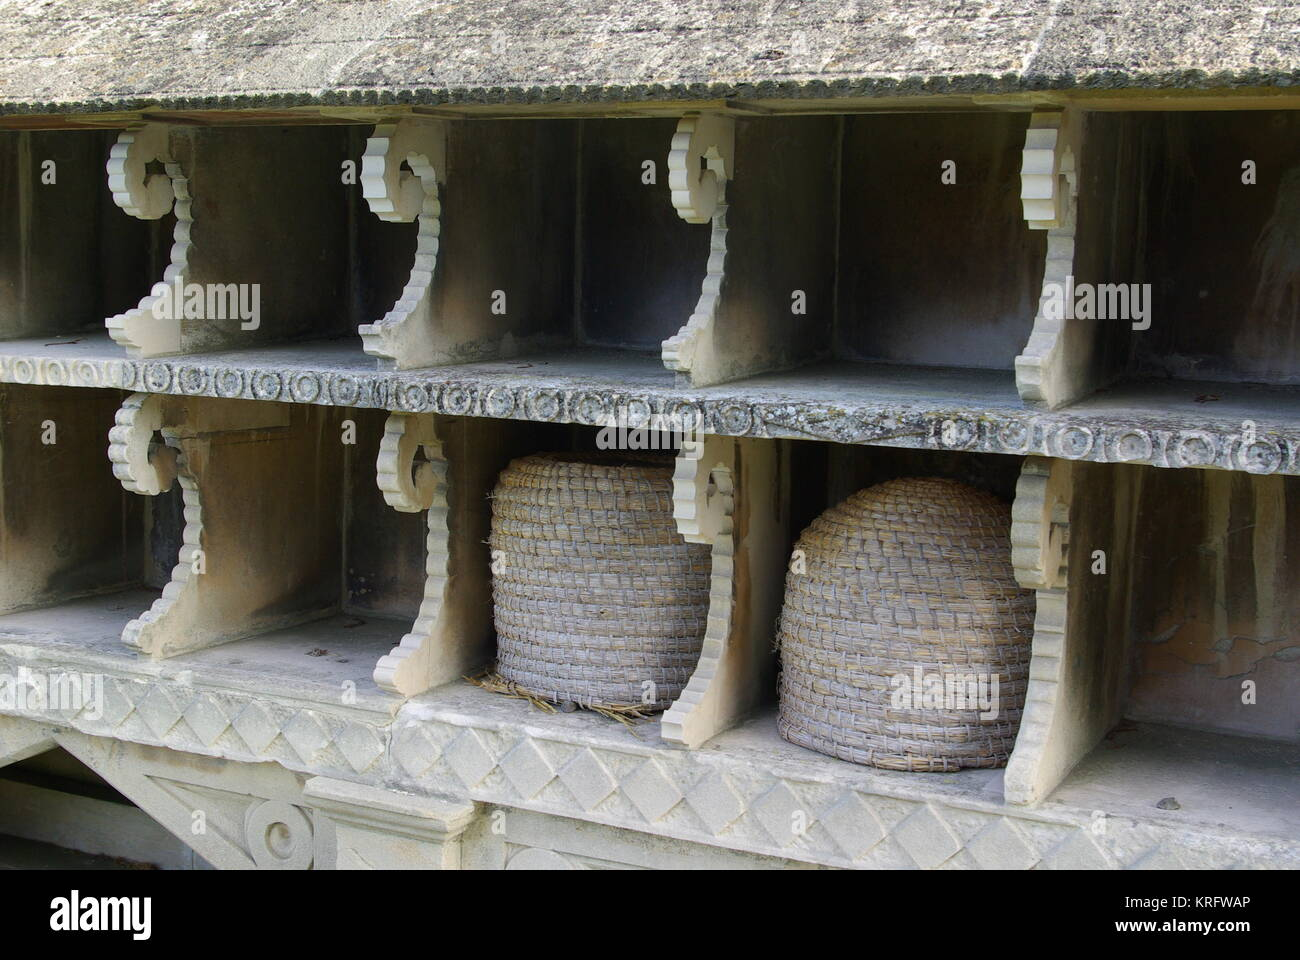 Close-up of a bee shelter or beehive rack dating from the mid-19th century in the churchyard of St Mary's Church, - Stock Image